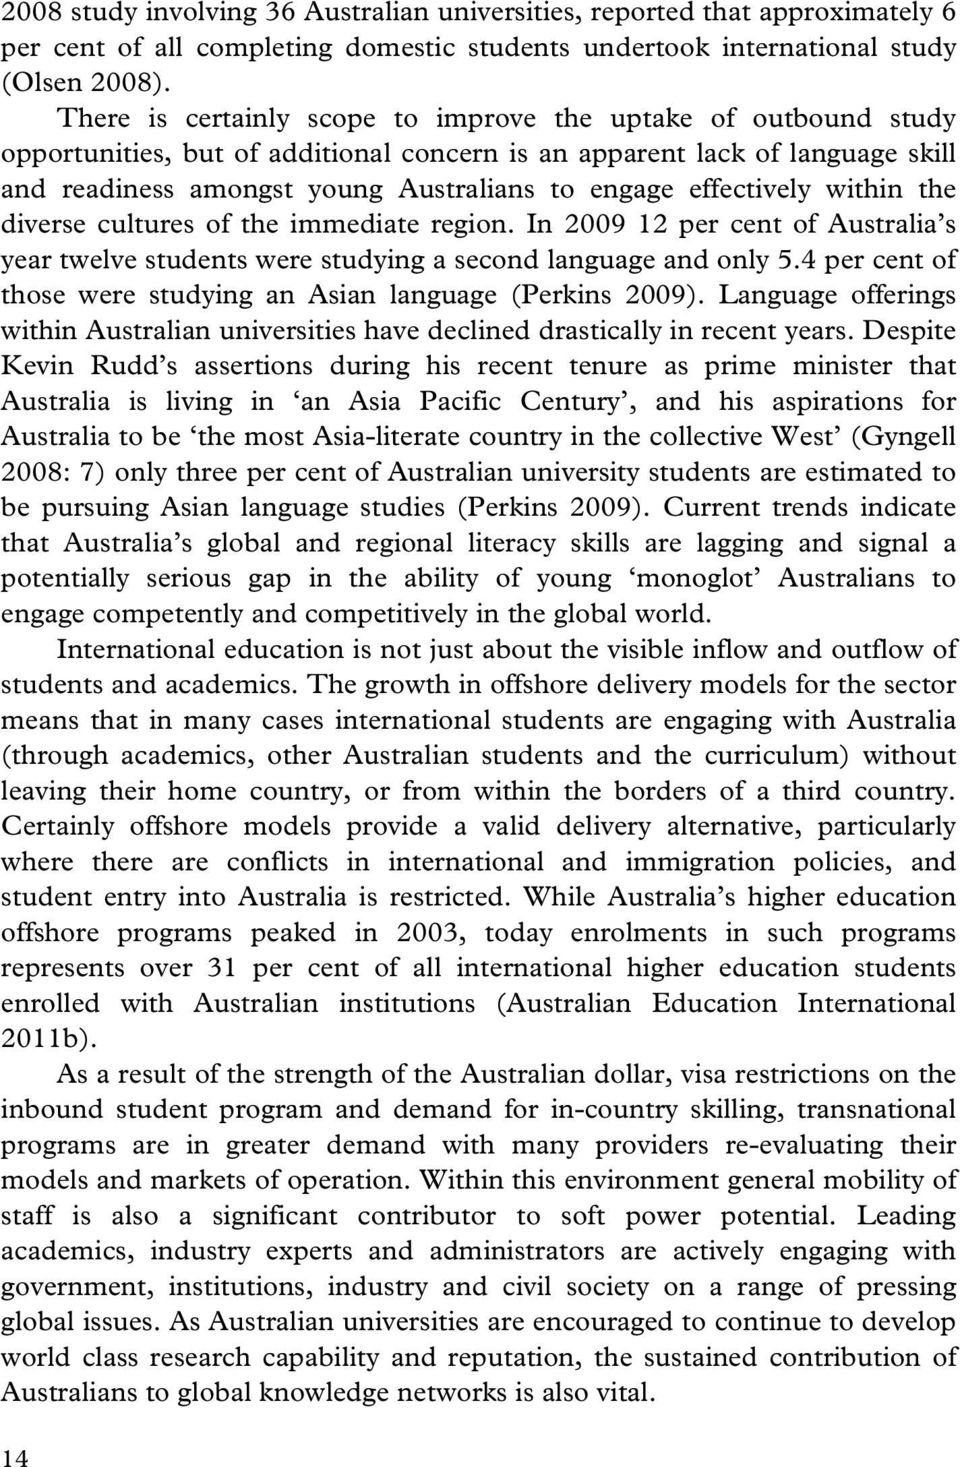 effectively within the diverse cultures of the immediate region. In 2009 12 per cent of Australia s year twelve students were studying a second language and only 5.